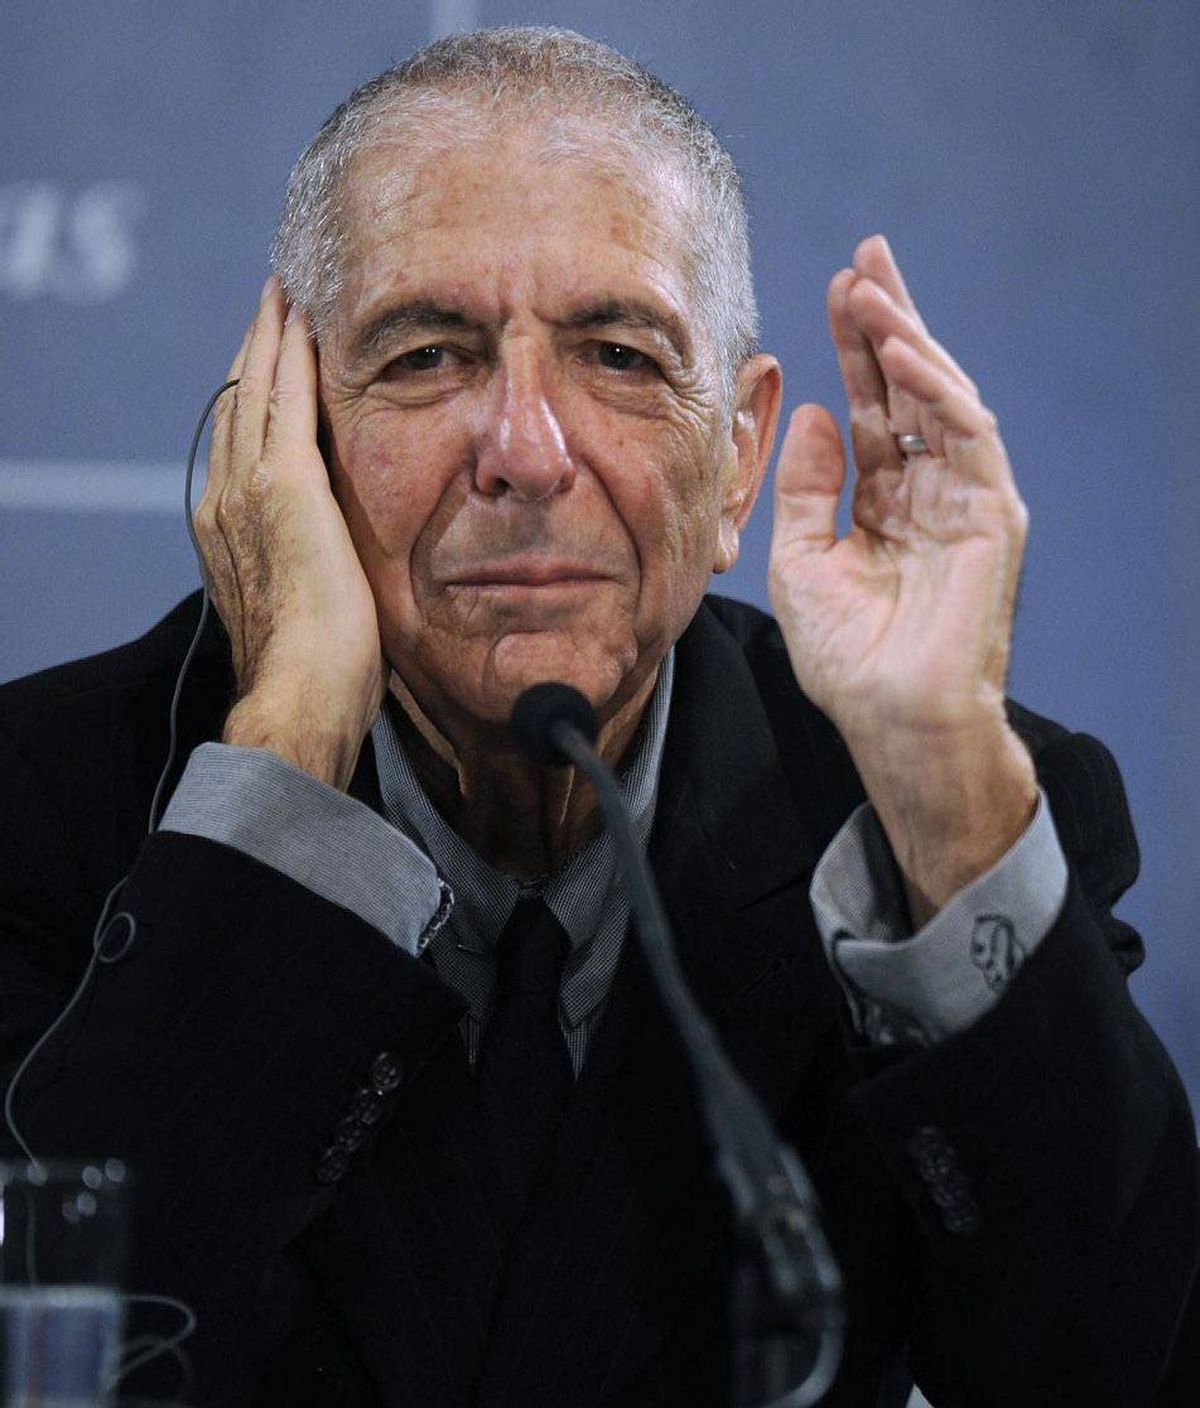 """Leonard Cohen """"If you want a lover I'll do anything you ask me to."""" But, alas, handing out roses to pharmaceutical sales reps and swimsuit models could mean the spiritual death of the ultimate ladies' man."""